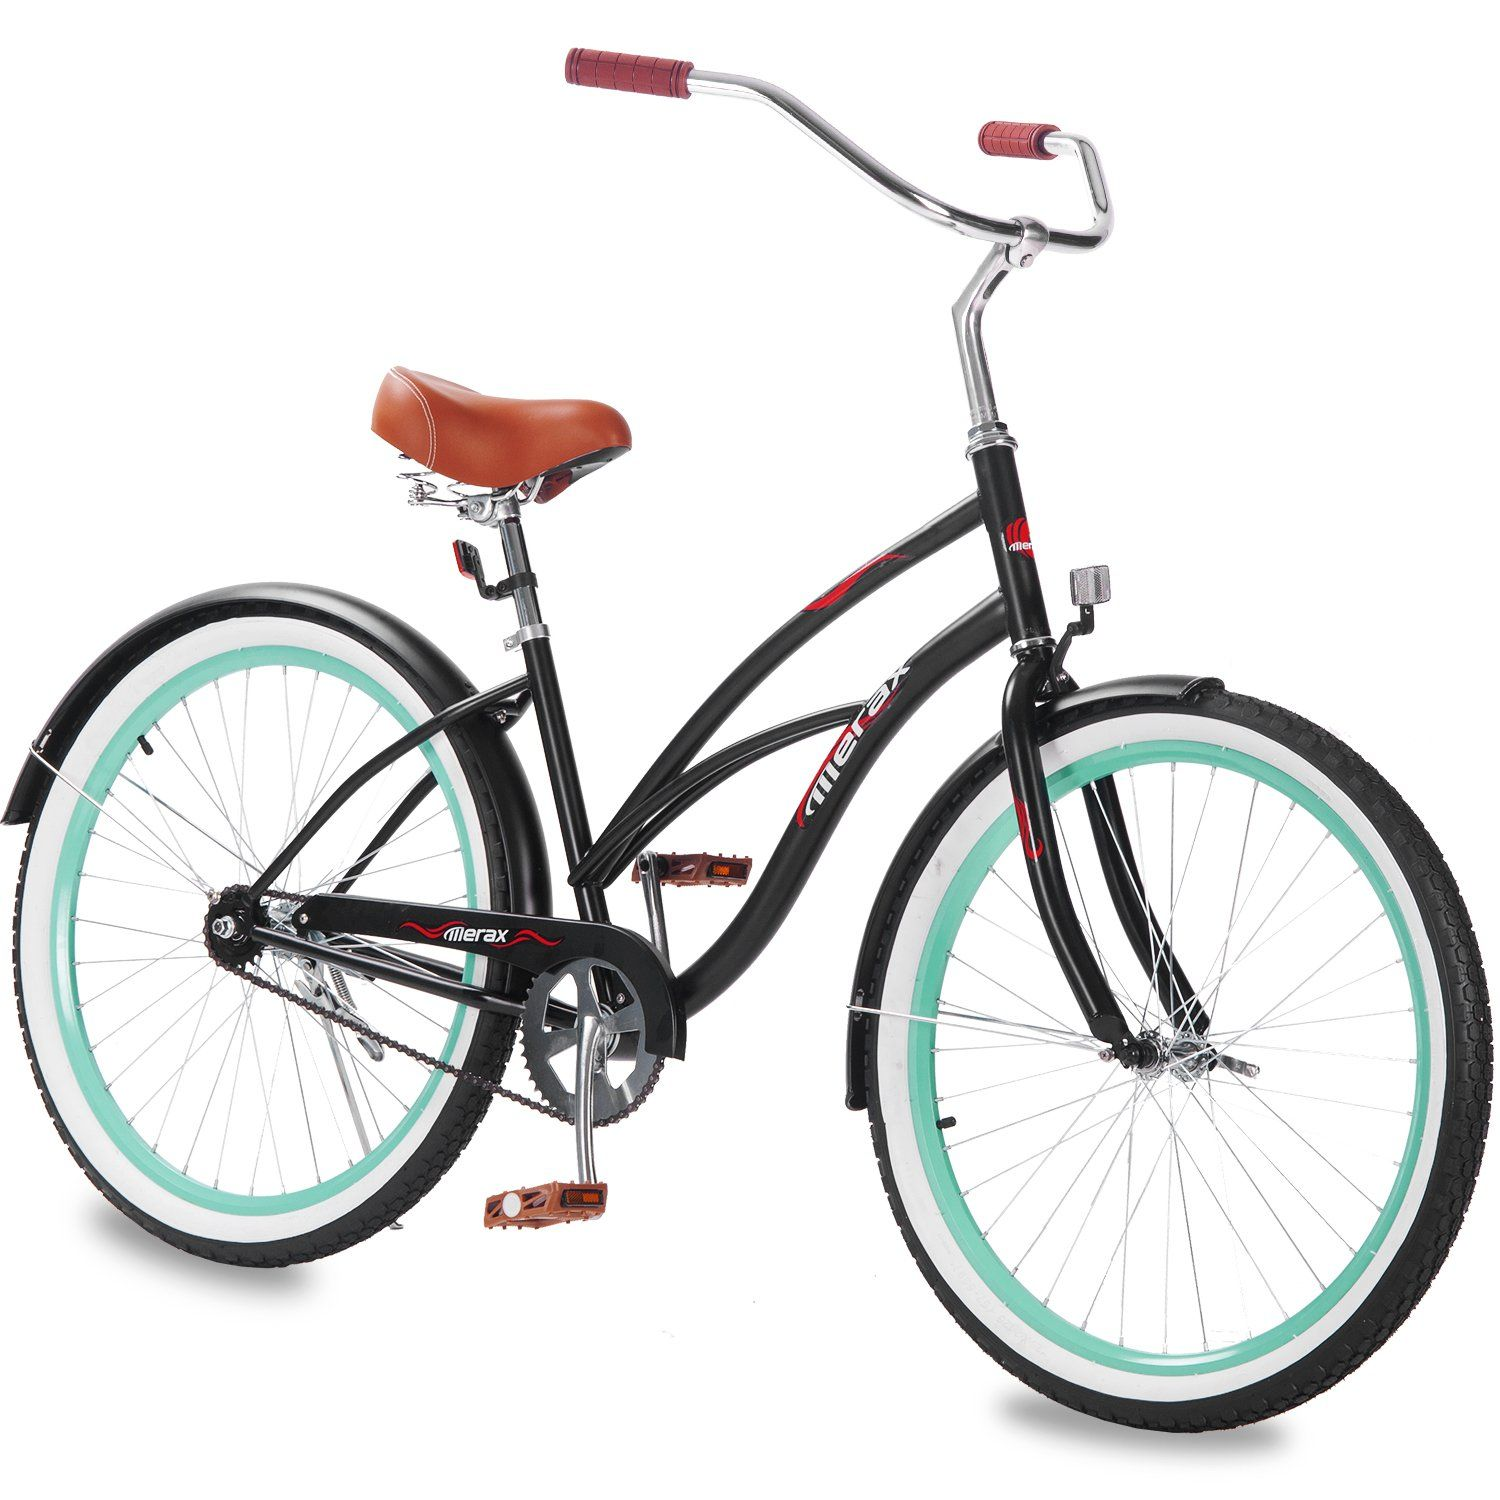 Classic single speed women s cruiser bike ideal for casual comfortable riding around the neighborhood curved beach cruiser design with 17 inch durable